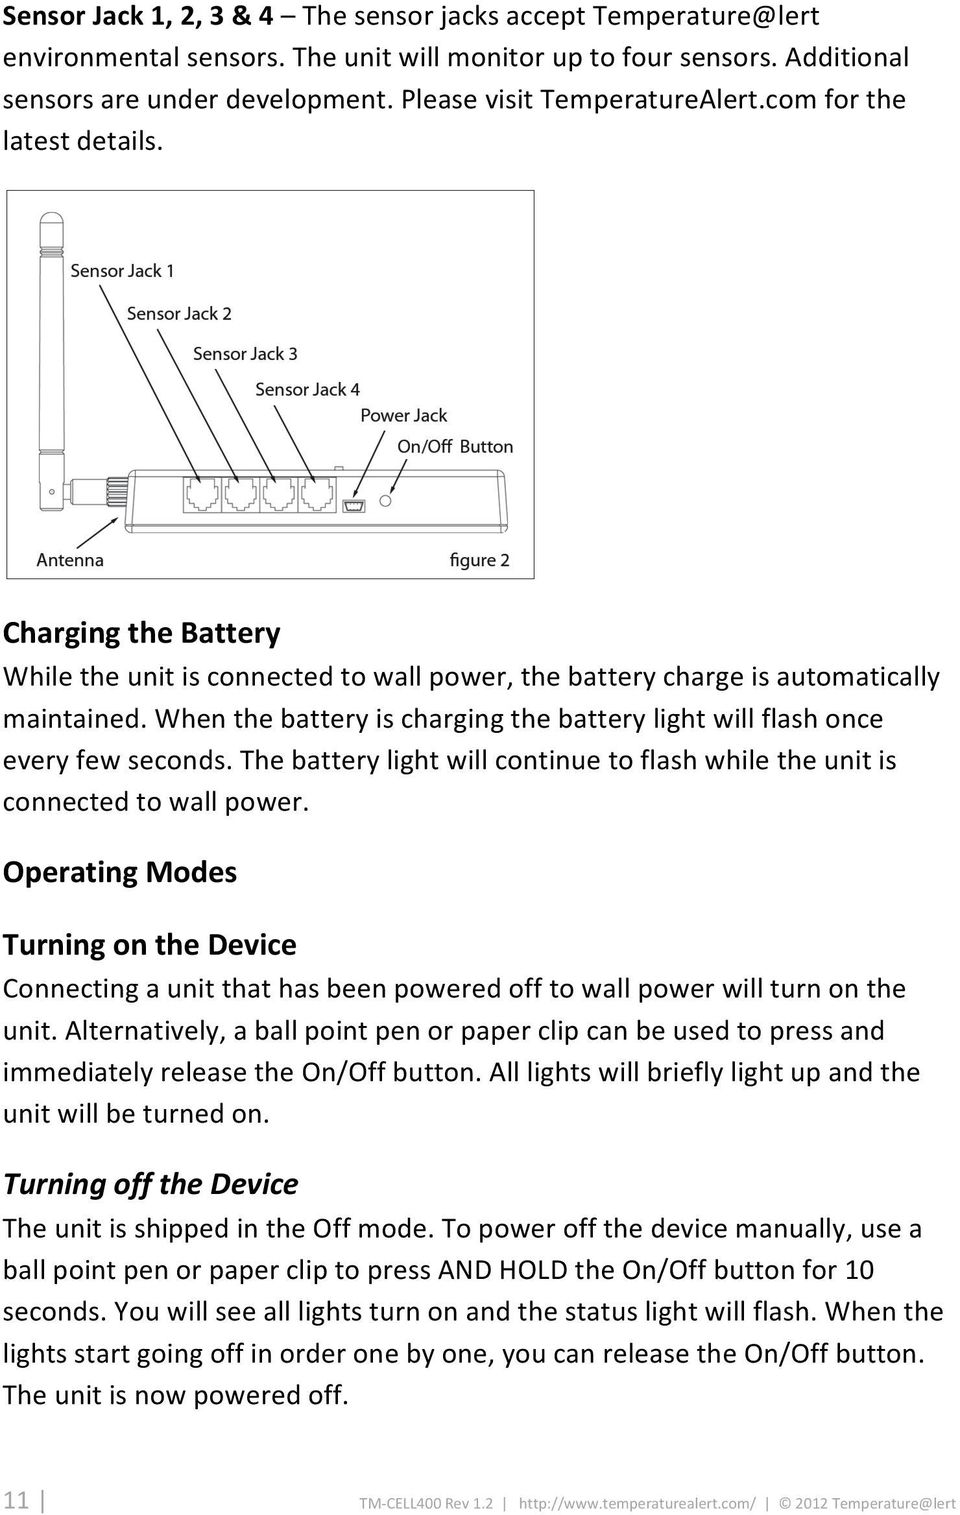 When the battery is charging the battery light will flash once every few seconds. The battery light will continue to flash while the unit is connected to wall power.